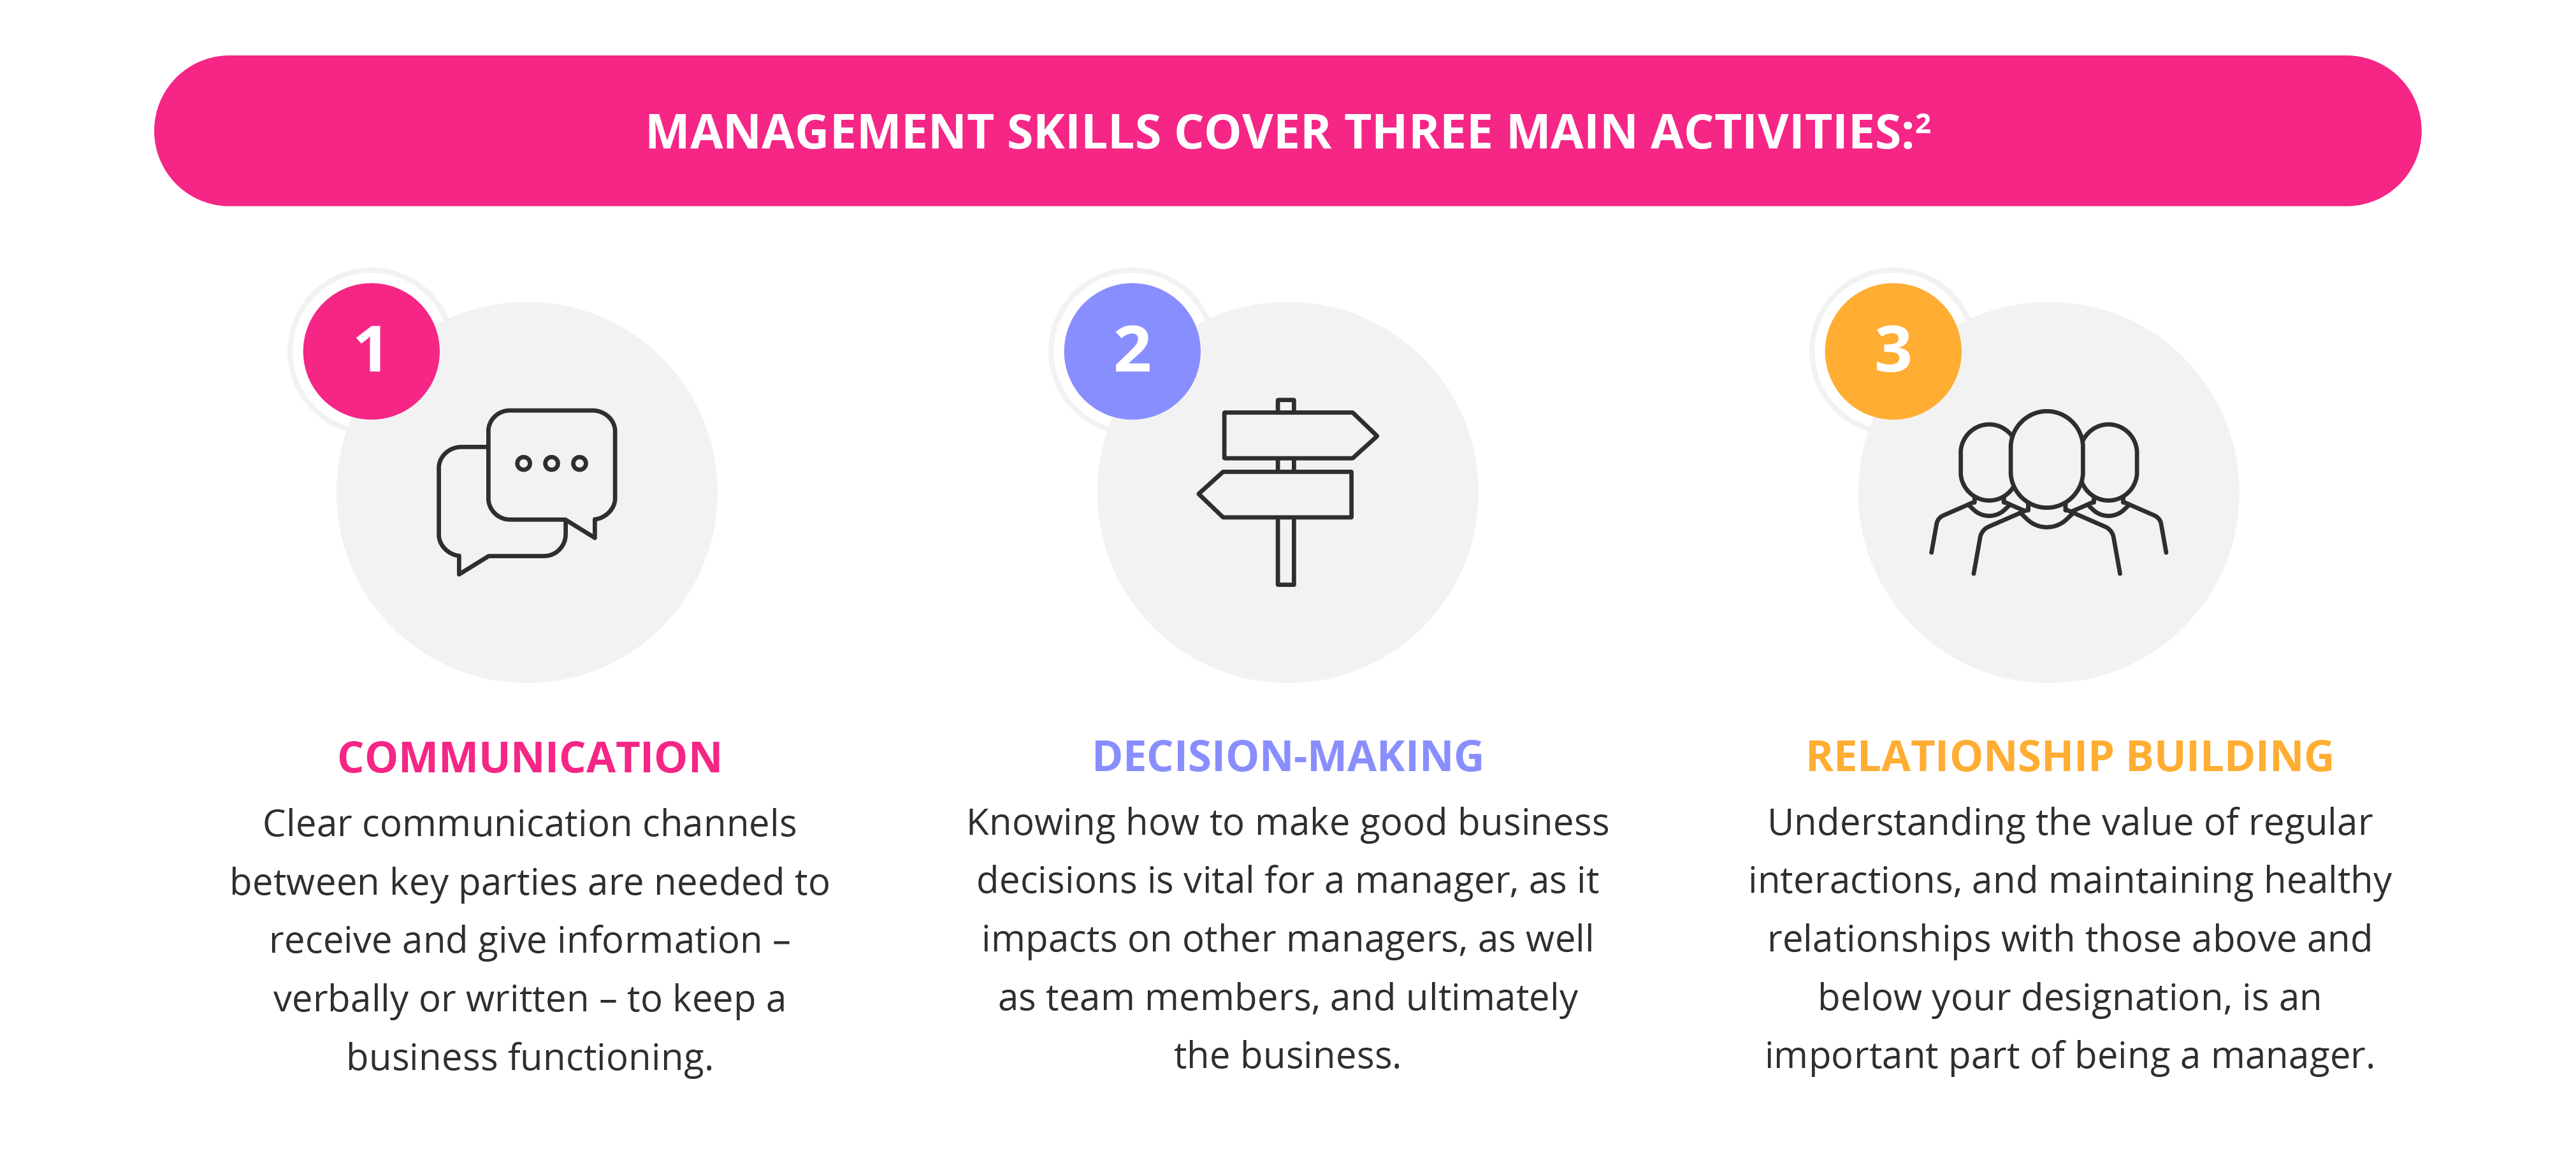 The three most important management skills to master